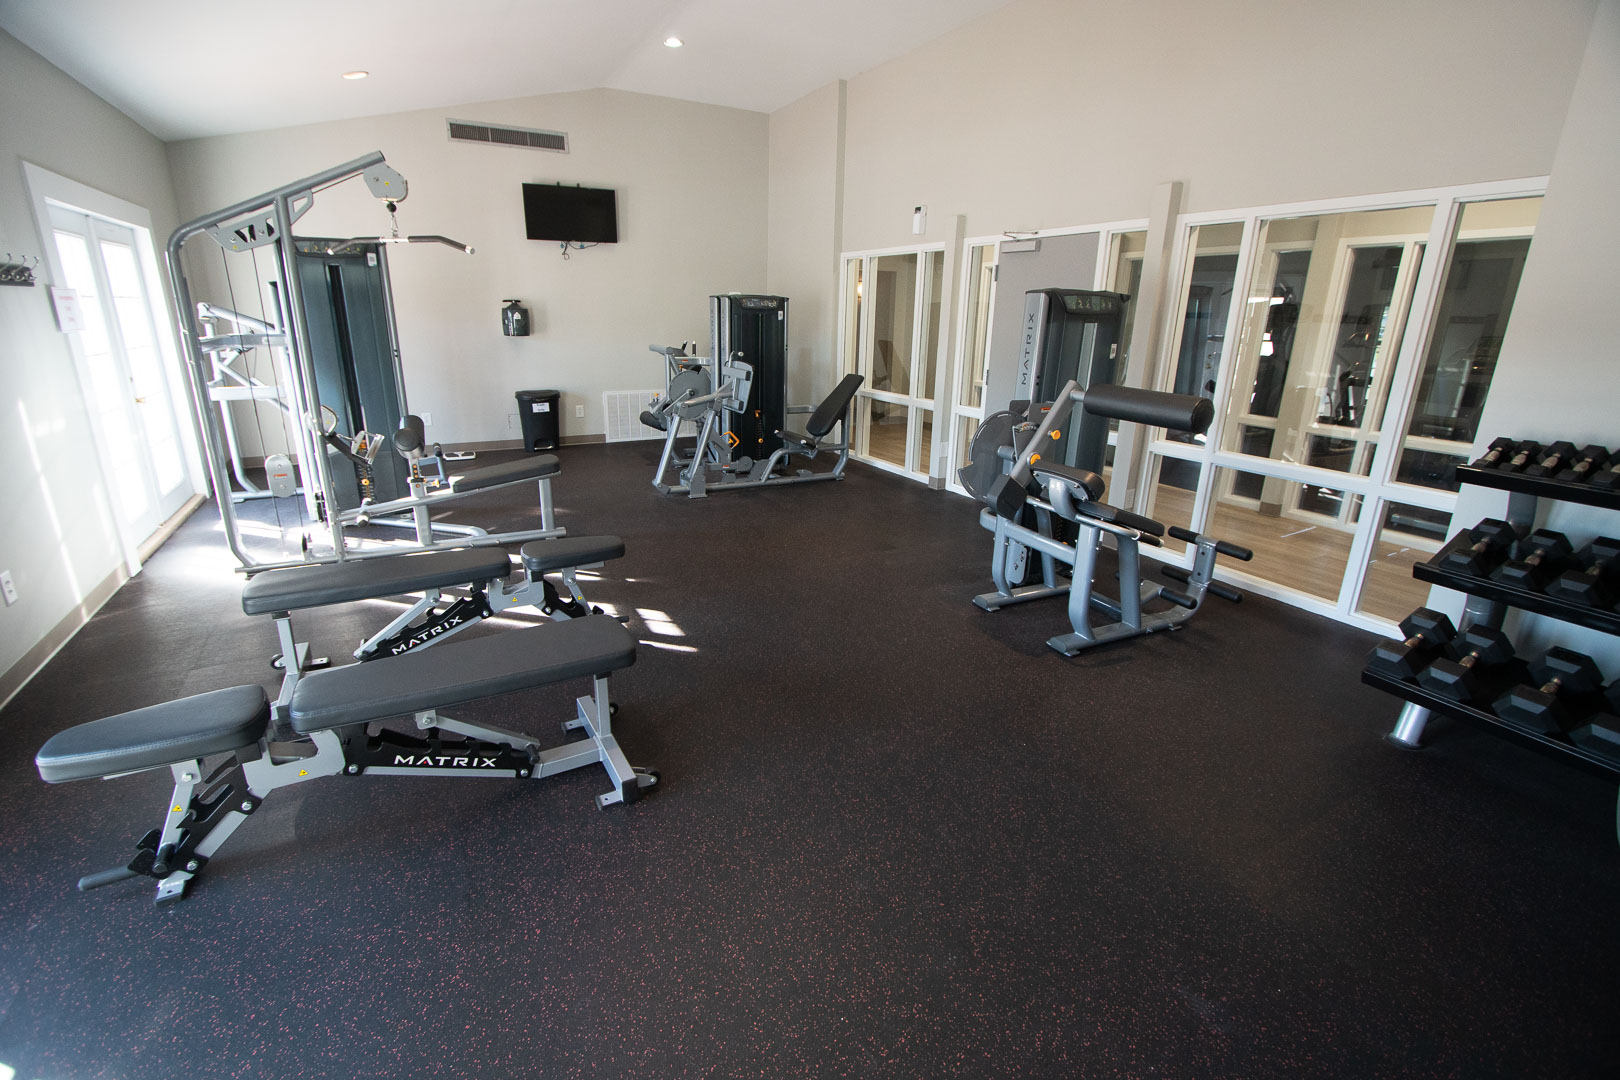 A fully equipped exercise room at VRI's Waterwood Townhomes in New Bern, North Carolina.